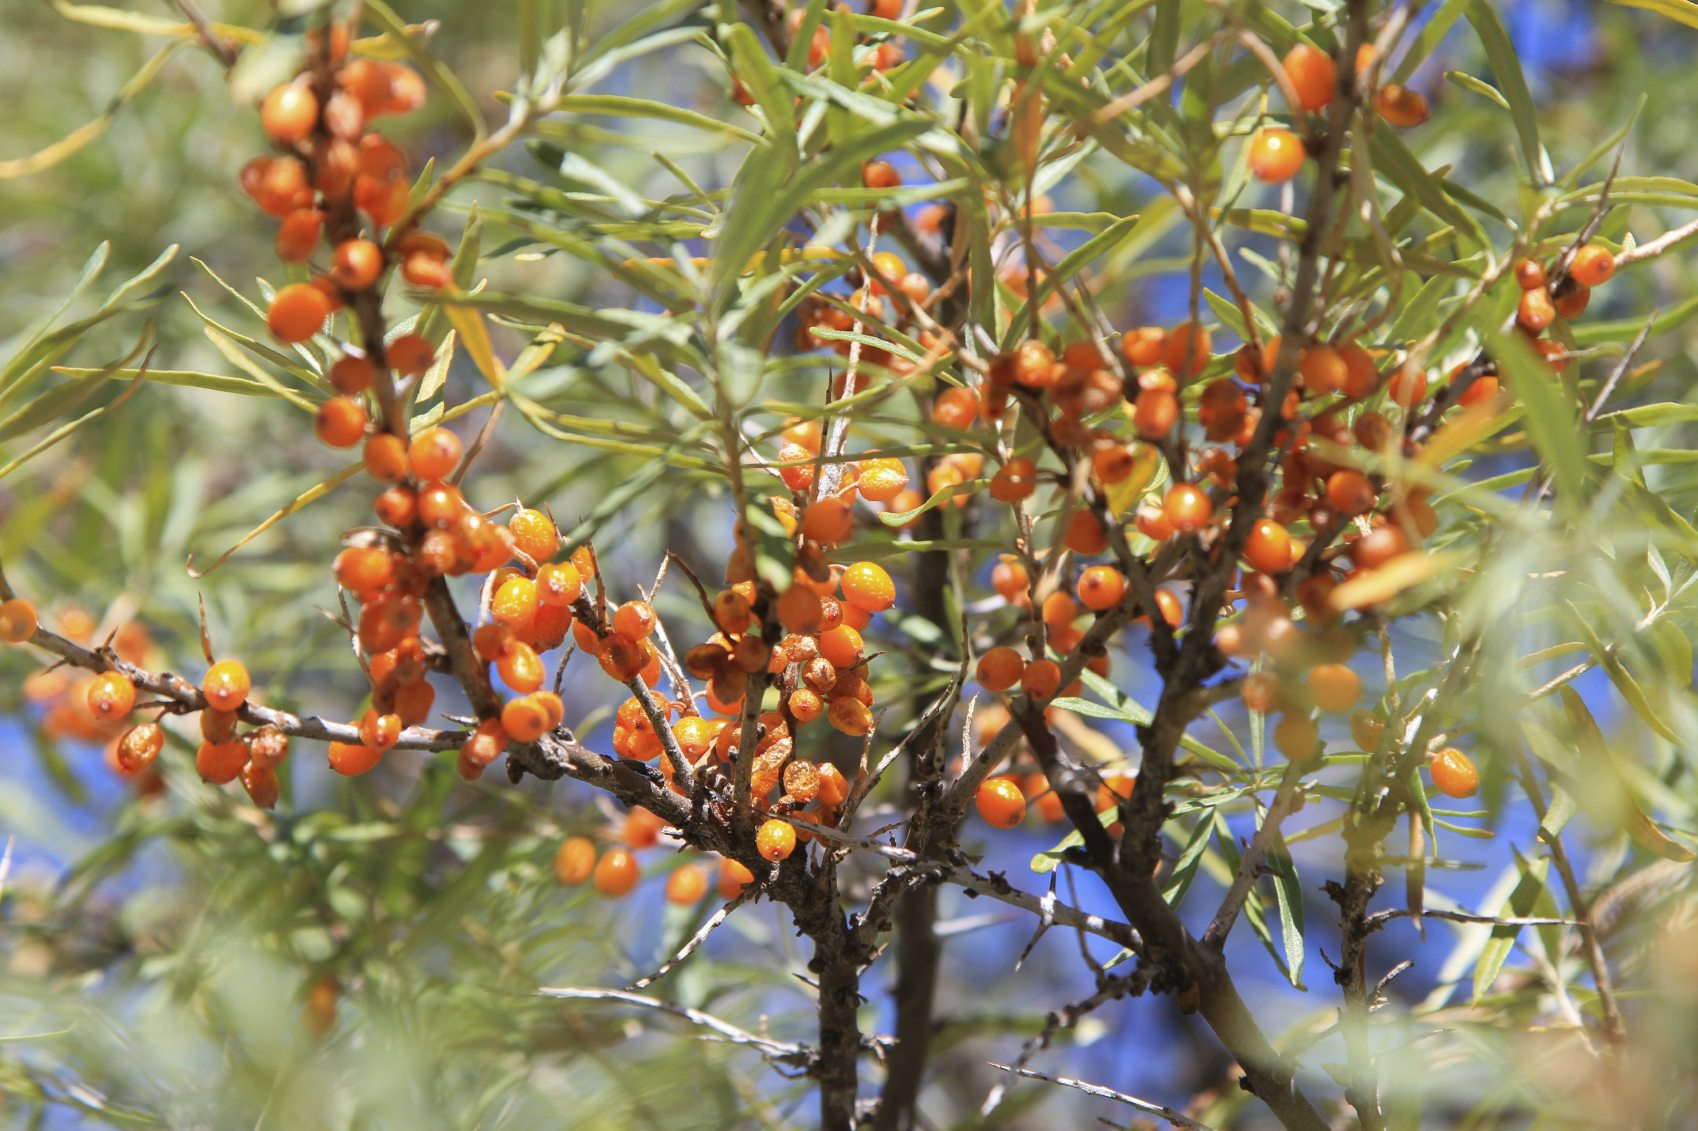 'Seabuckthorn' Is That The Panacea To All That Ails Humanity! Including Covid-19, Back To Half A Century Old Connect With Nature !